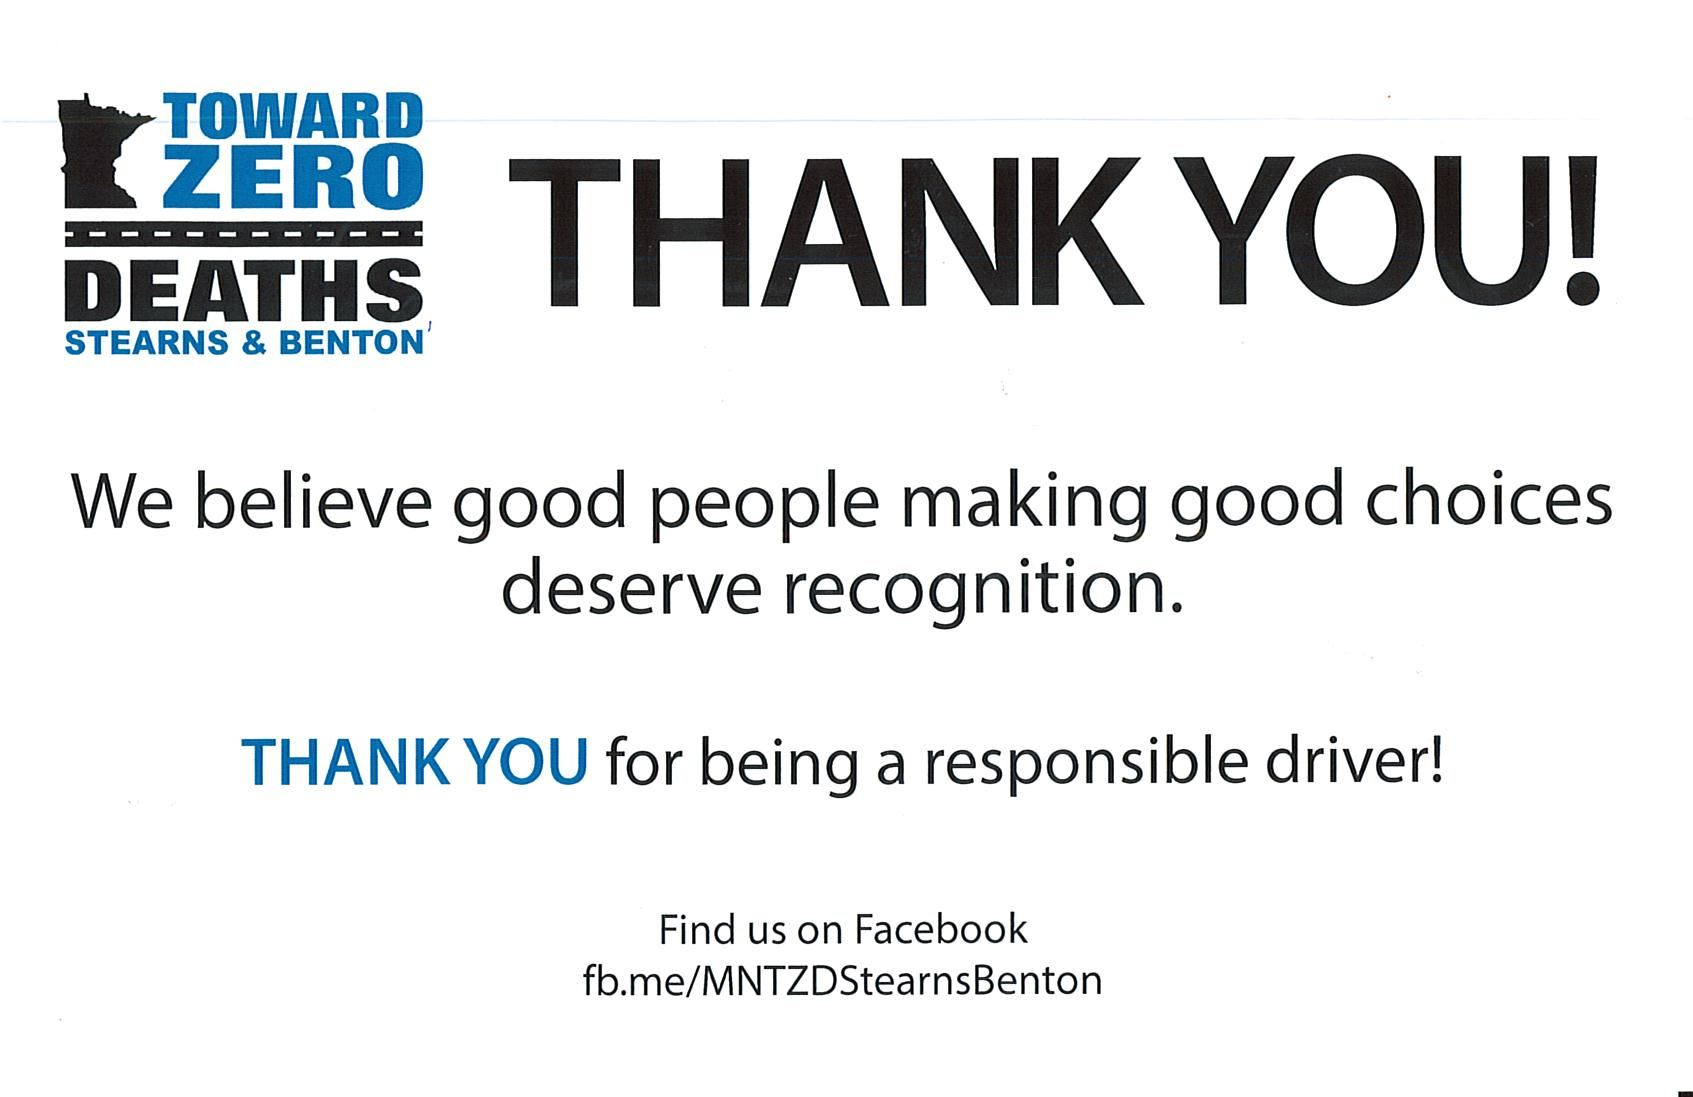 Thank you for being a responsible driver!